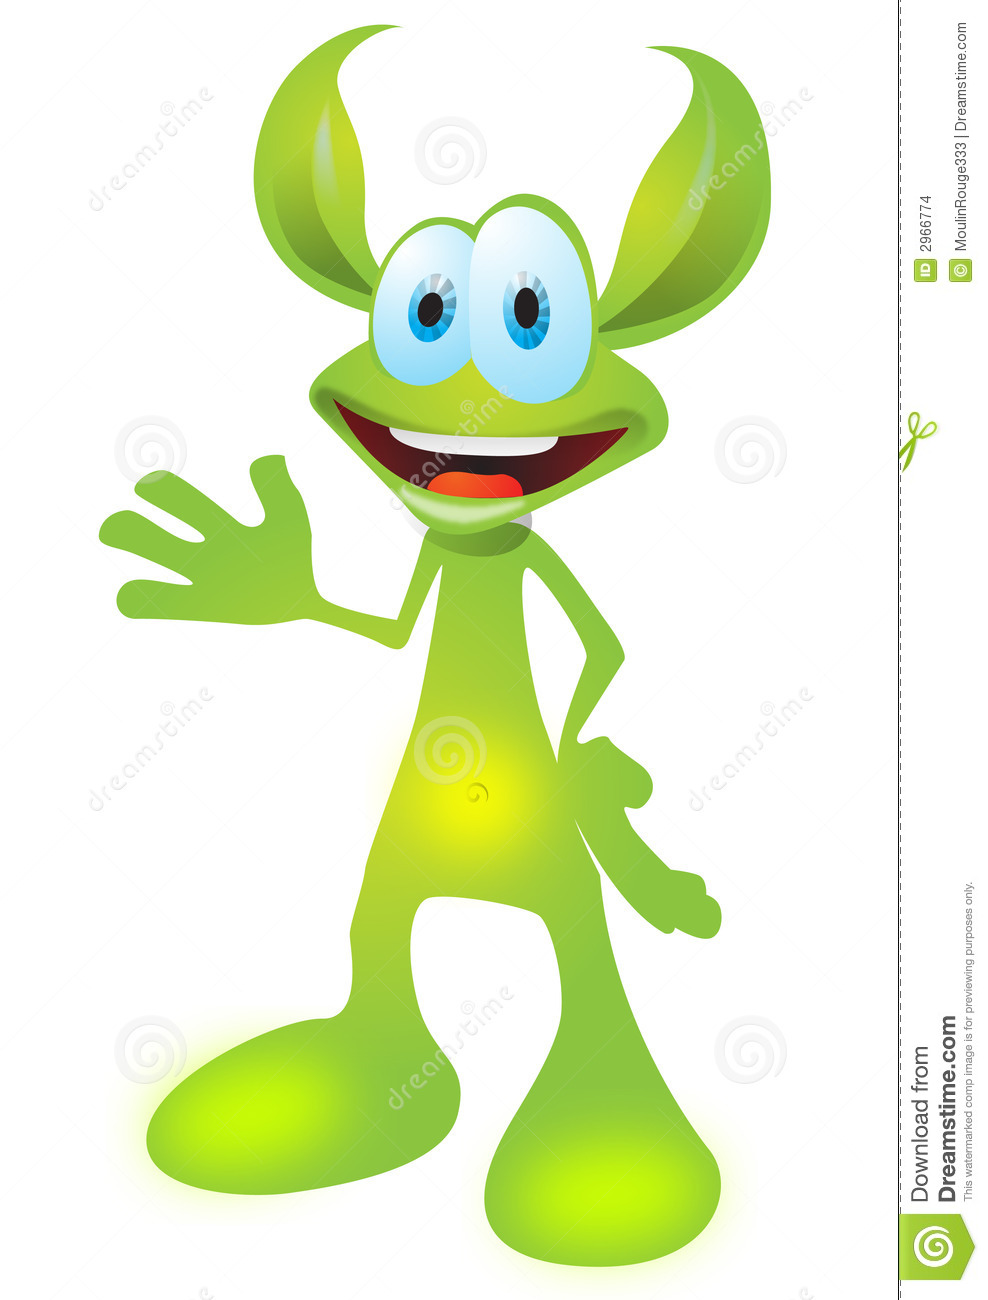 Animated Cartoon Creature Stock Images   Image  2966774